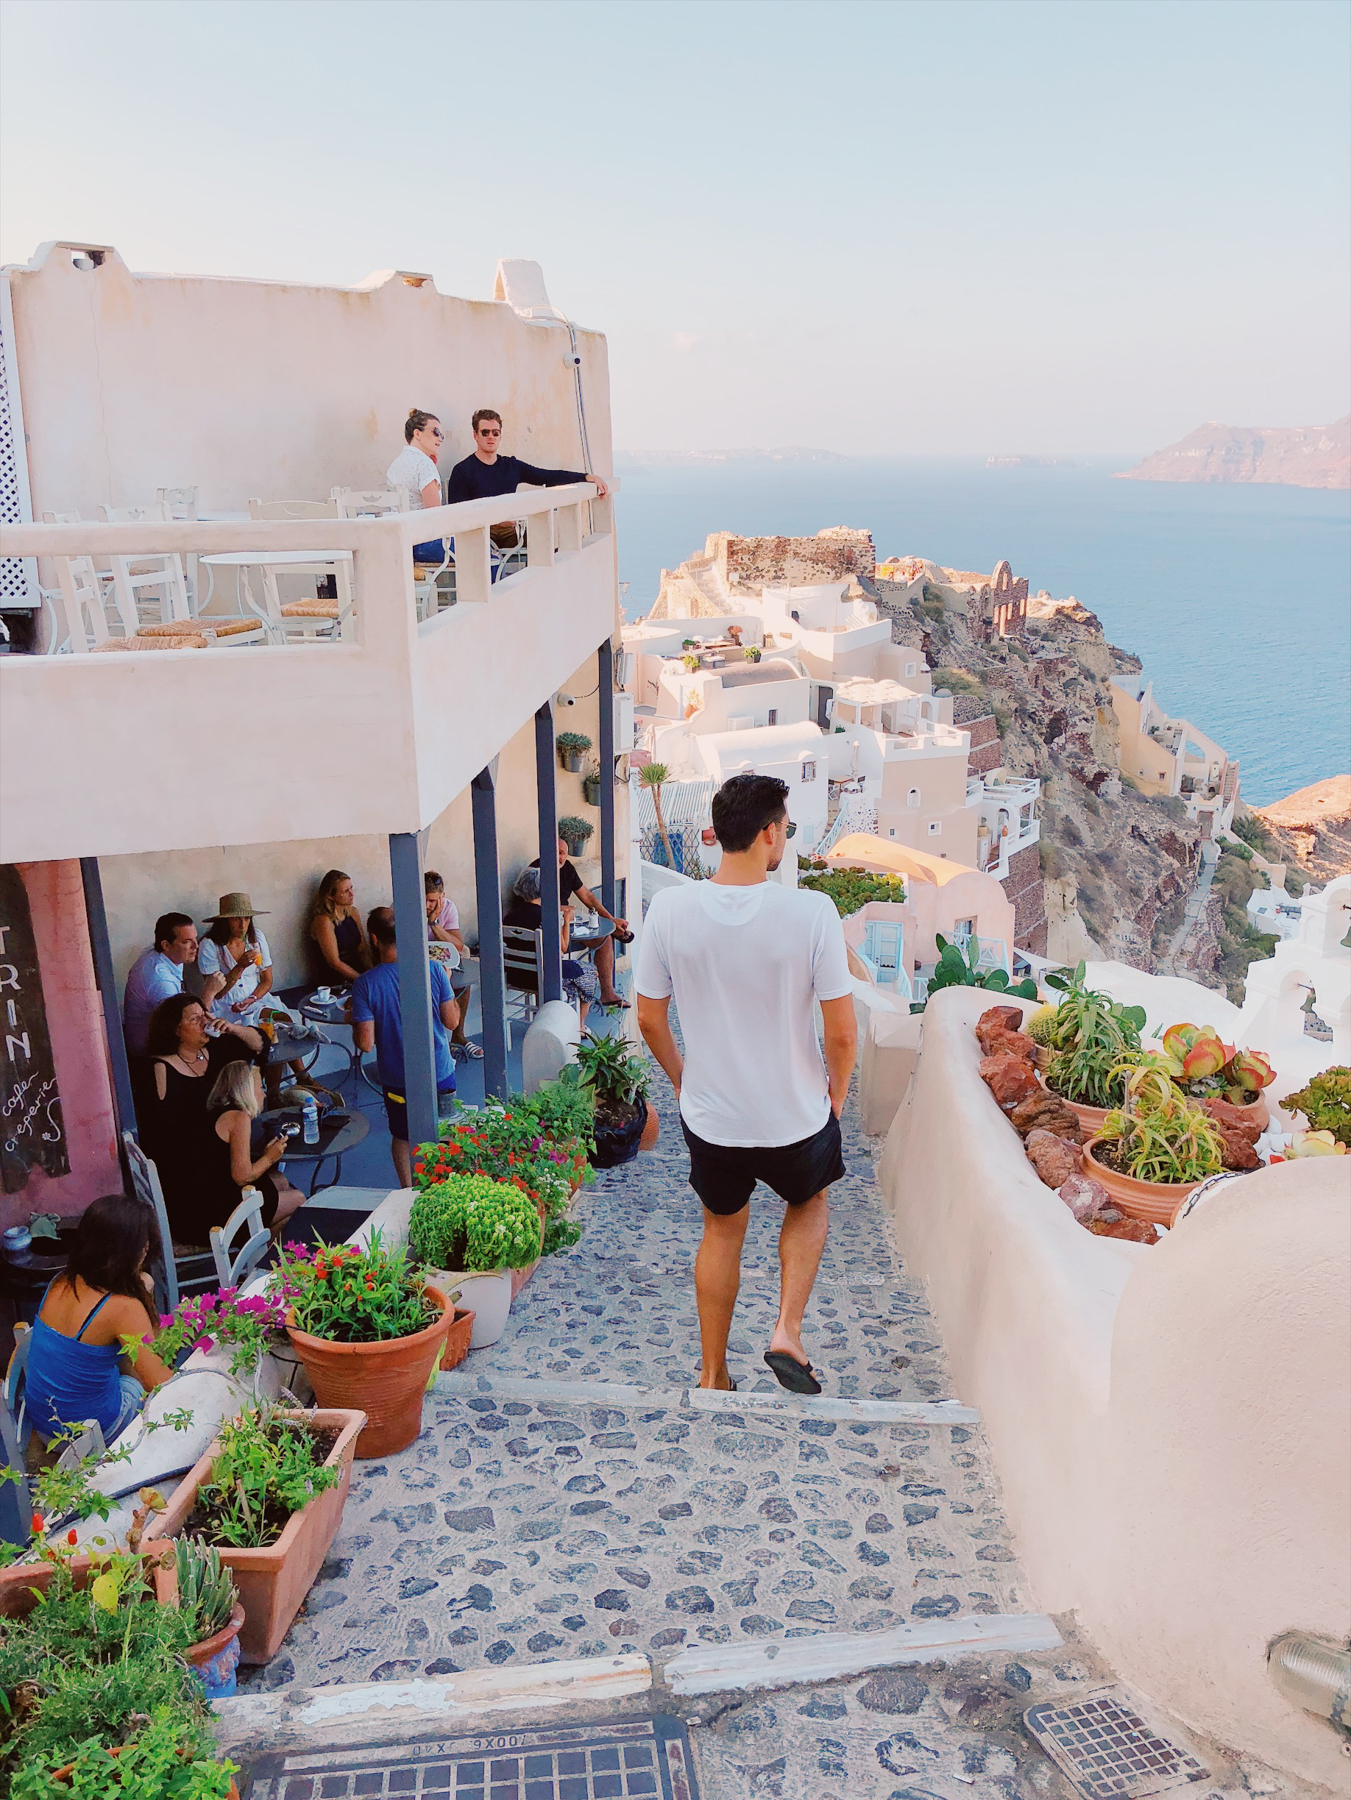 Walking around Oia, Vitrin Cafe is to the left